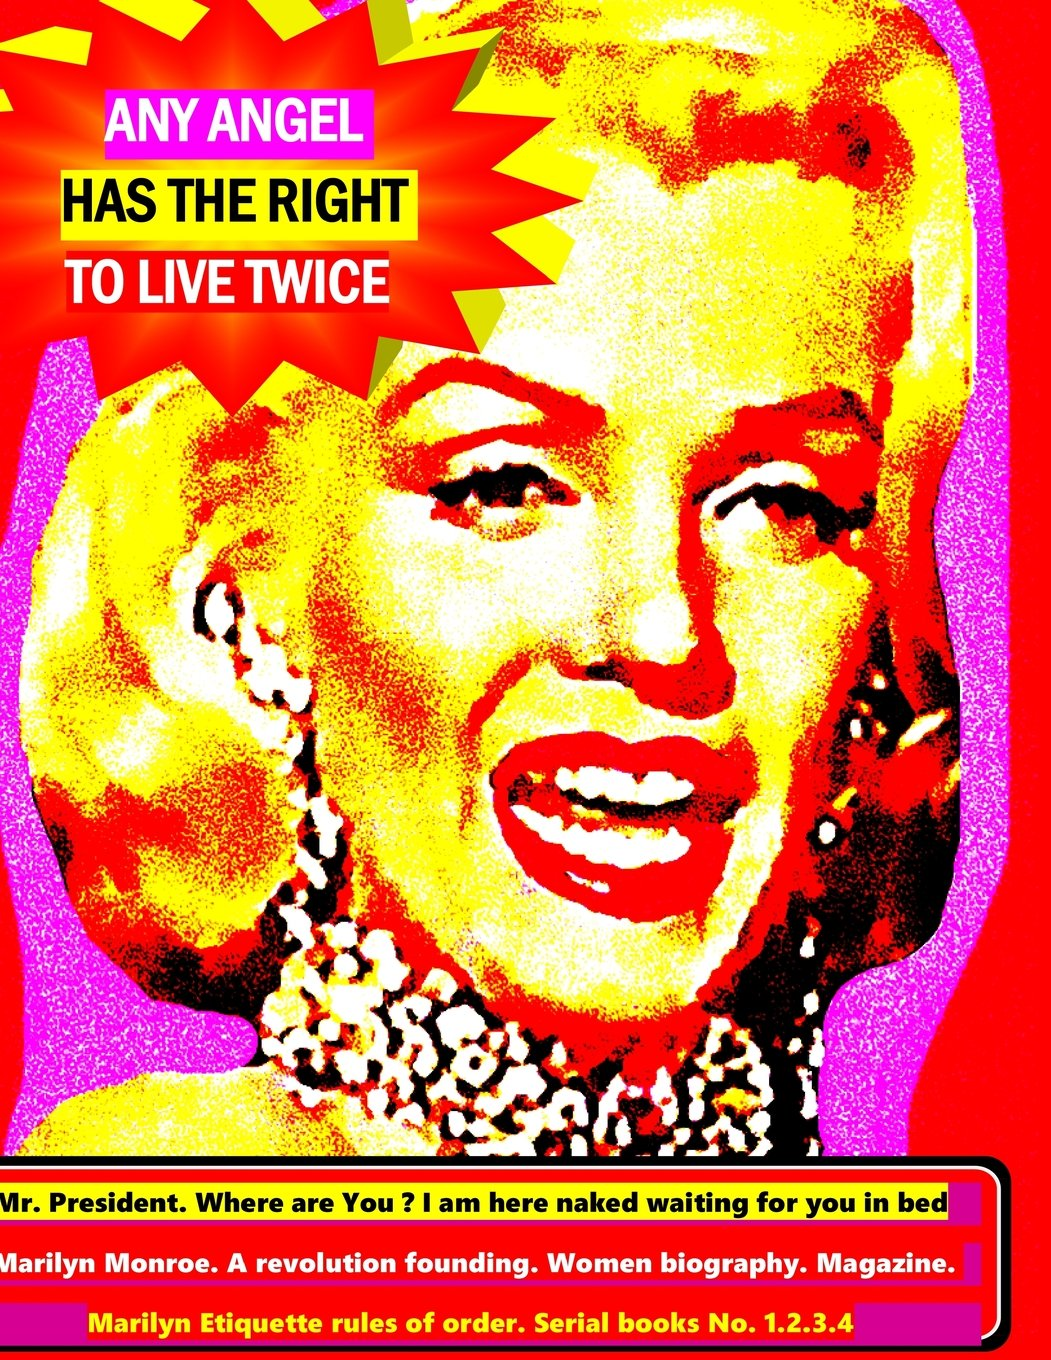 Download Any angel has the right to live twice: Mr. President  where are you ?  I am here naked waiting for you in bed.  Marilyn Monroe. A revolution in ... biography Magazine. Serial books No. 1.2.3.4 pdf epub